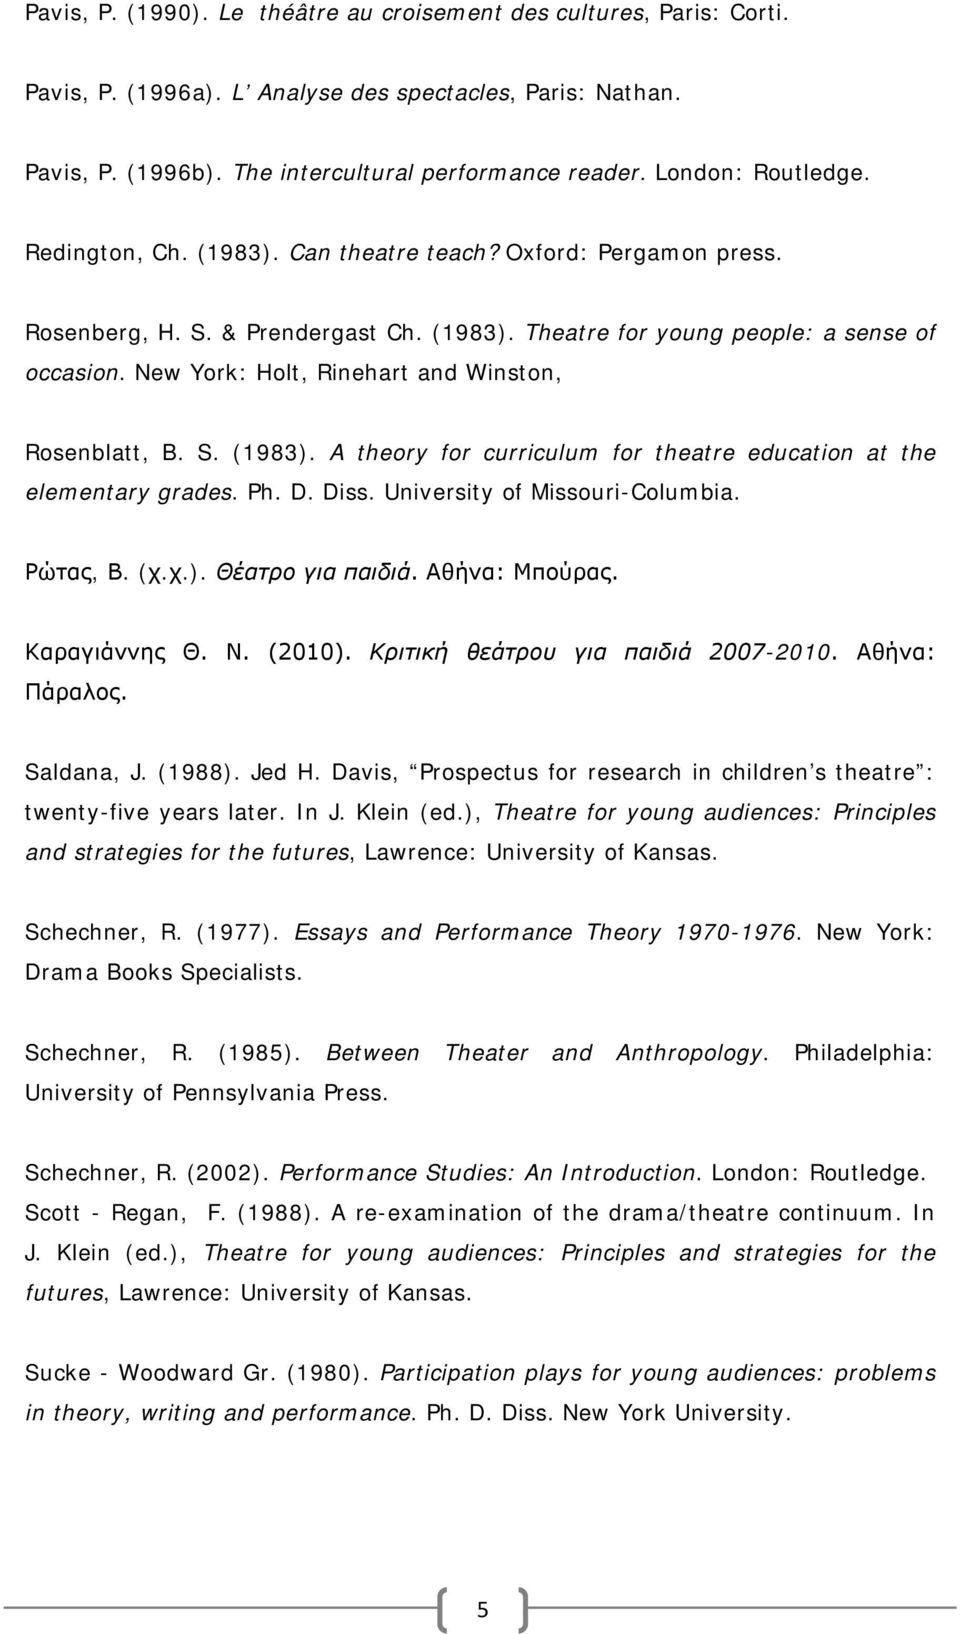 New York: Holt, Rinehart and Winston, Rosenblatt, B. S. (1983). A theory for curriculum for theatre education at the elementary grades. Ph. D. Diss. University of Missouri-Columbia. Ρώτας, Β. (χ.χ.). Θέατρο για παιδιά.